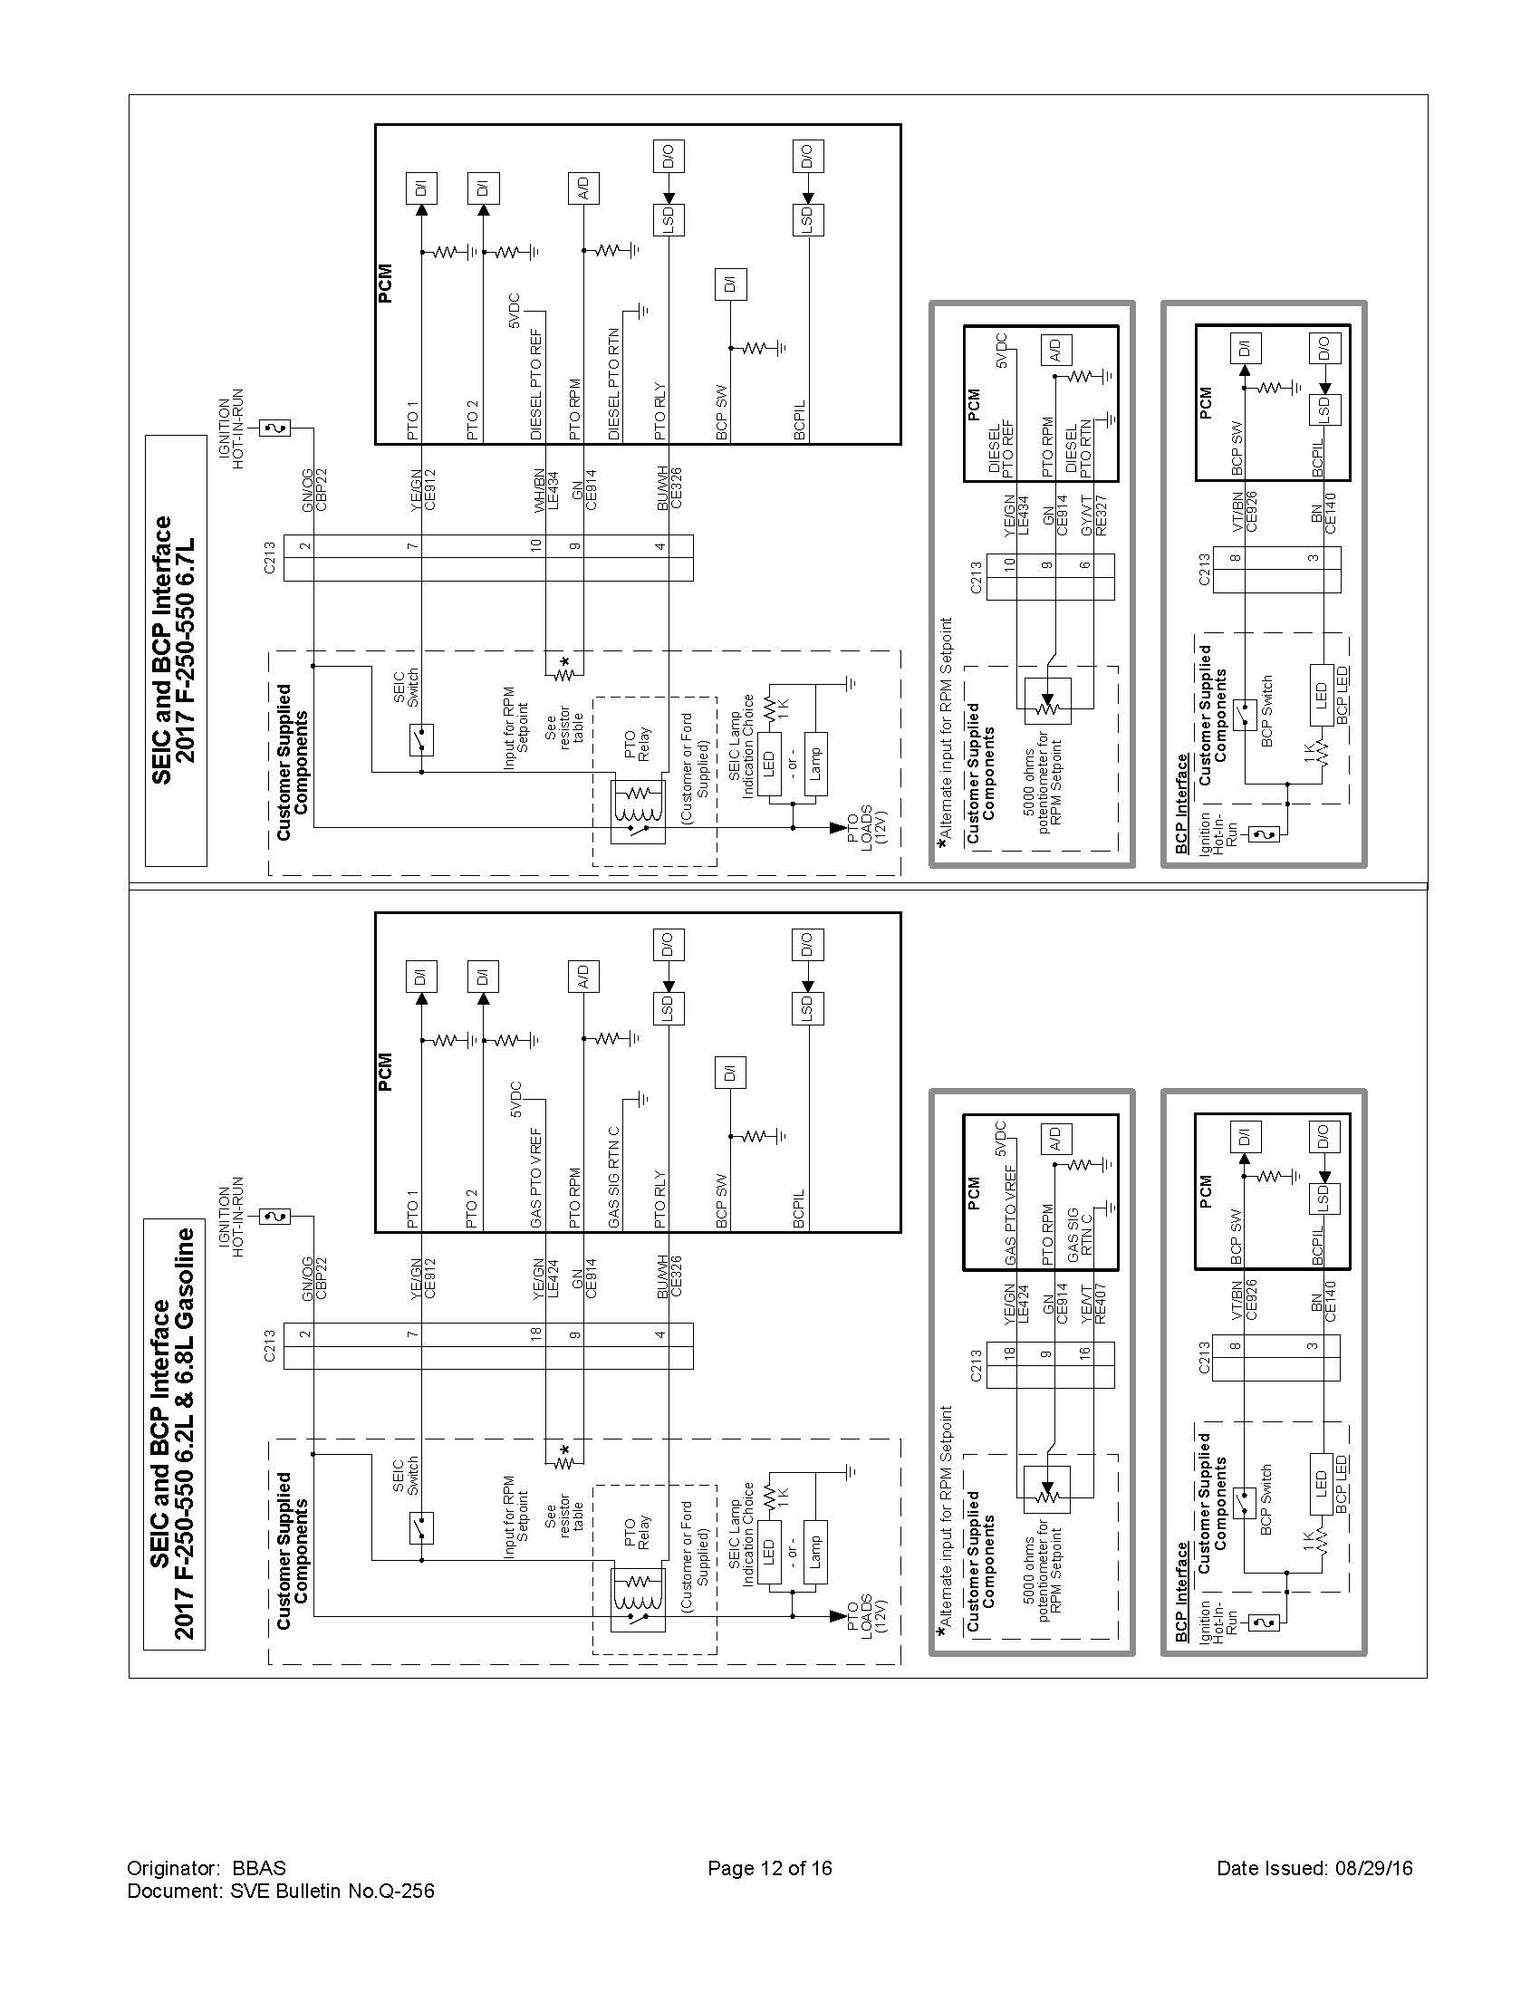 Ford 2120 Wiring Diagram | Wiring Diagram New Holland Wiring Diagram on new holland 2120 tractor, new holland 2120 fuel tank, new holland 2120 parts,